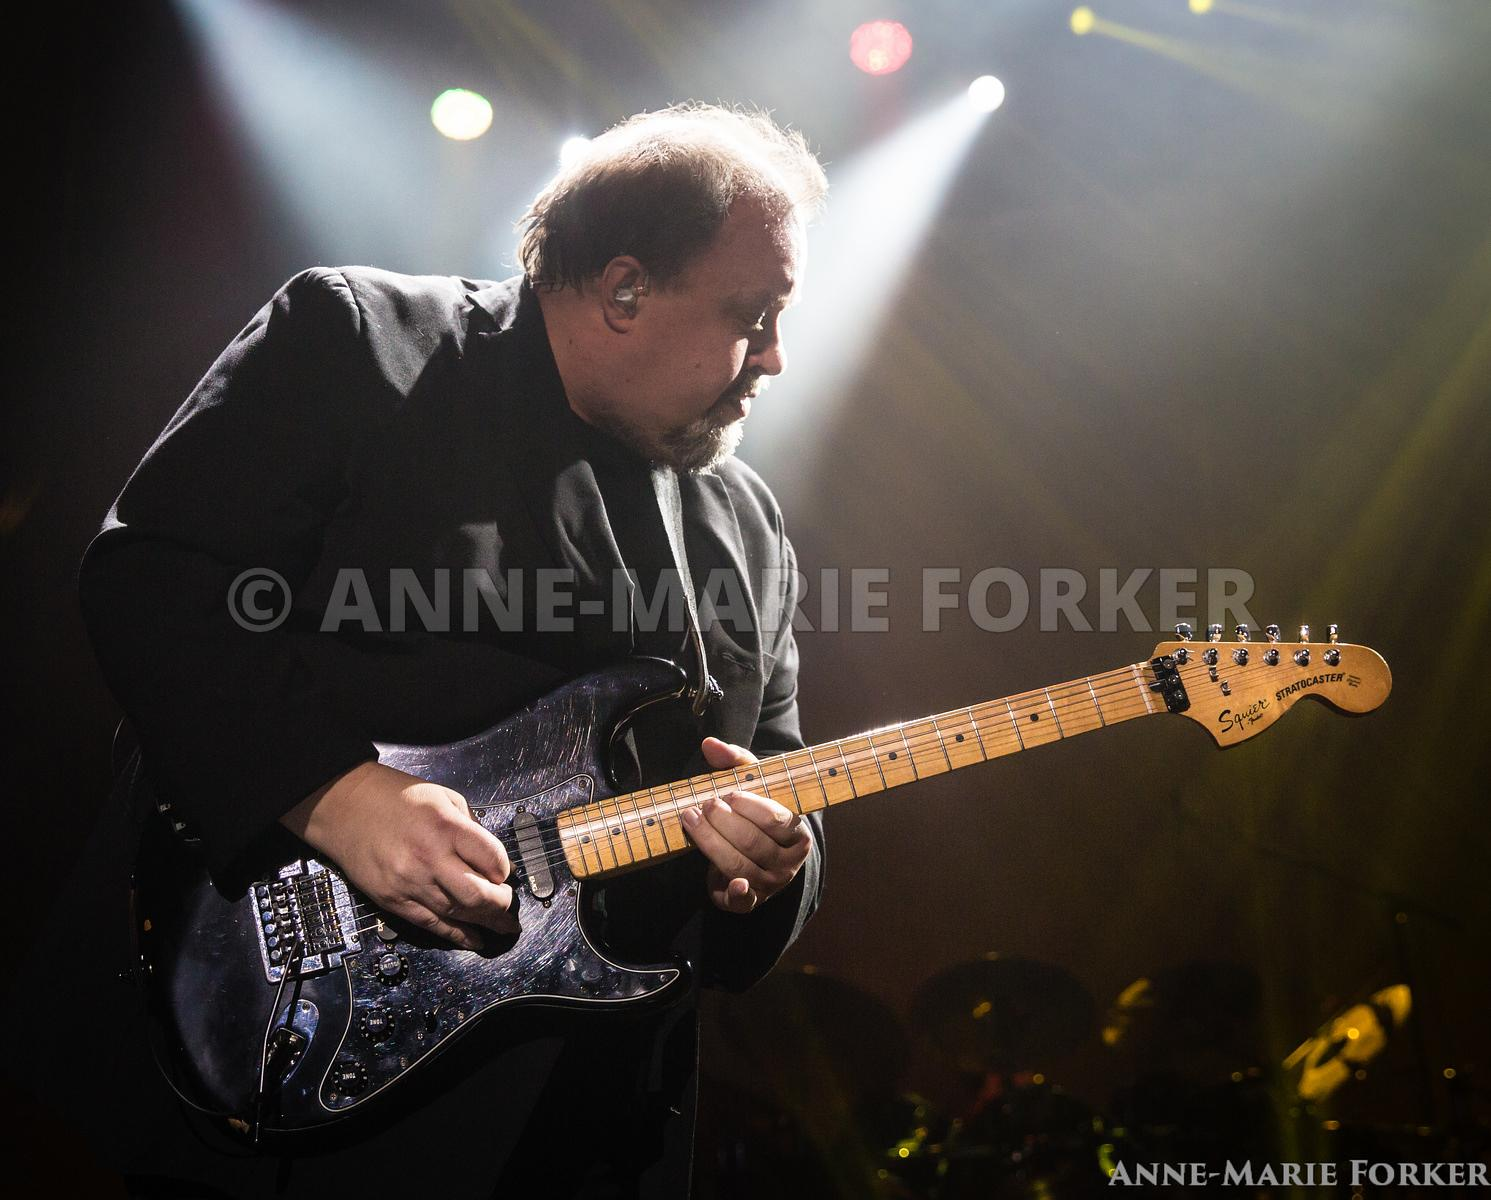 Marillion_Poland_FOR_PRINT_8_x_10_AM_Forker-9538